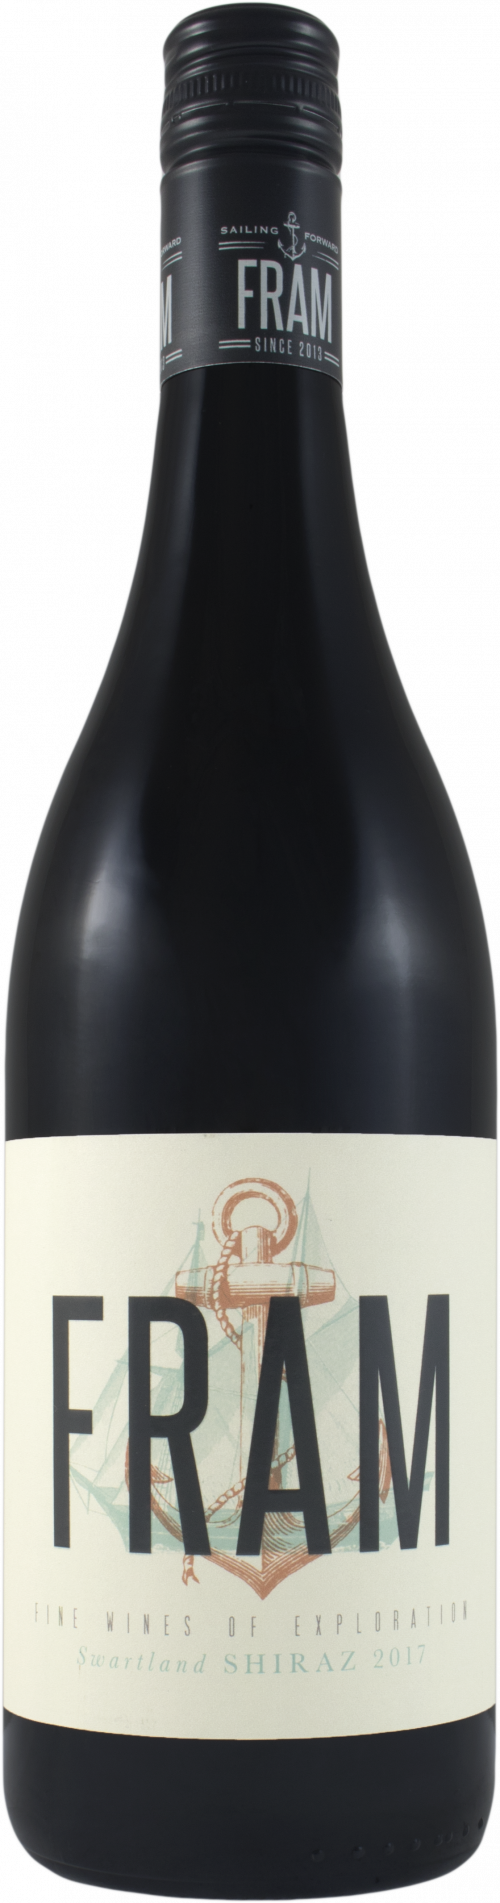 2018 Fram Shiraz 750ml